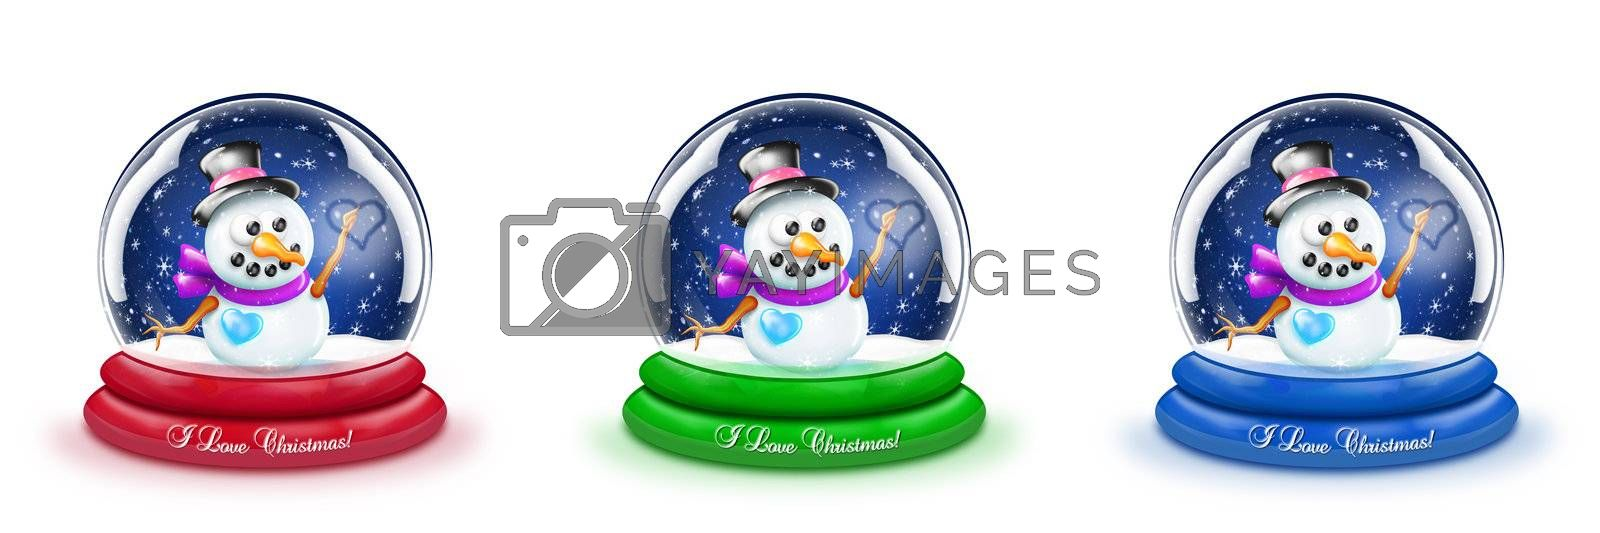 A cartoon Christmas snowman snow globe with three different base colors.